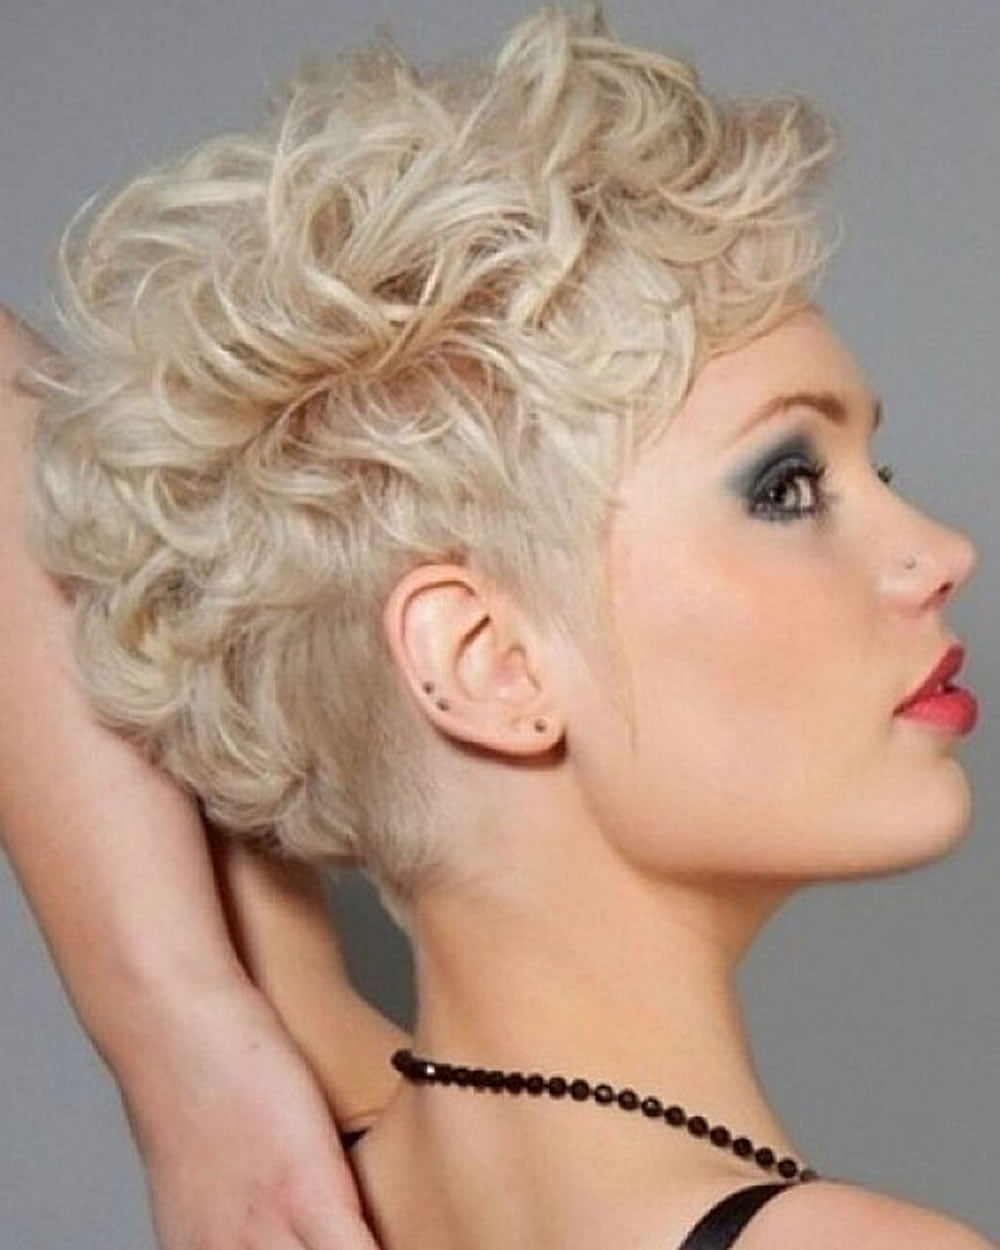 Hairstyles for Curly Short Hair 2018-Short Haircut Image